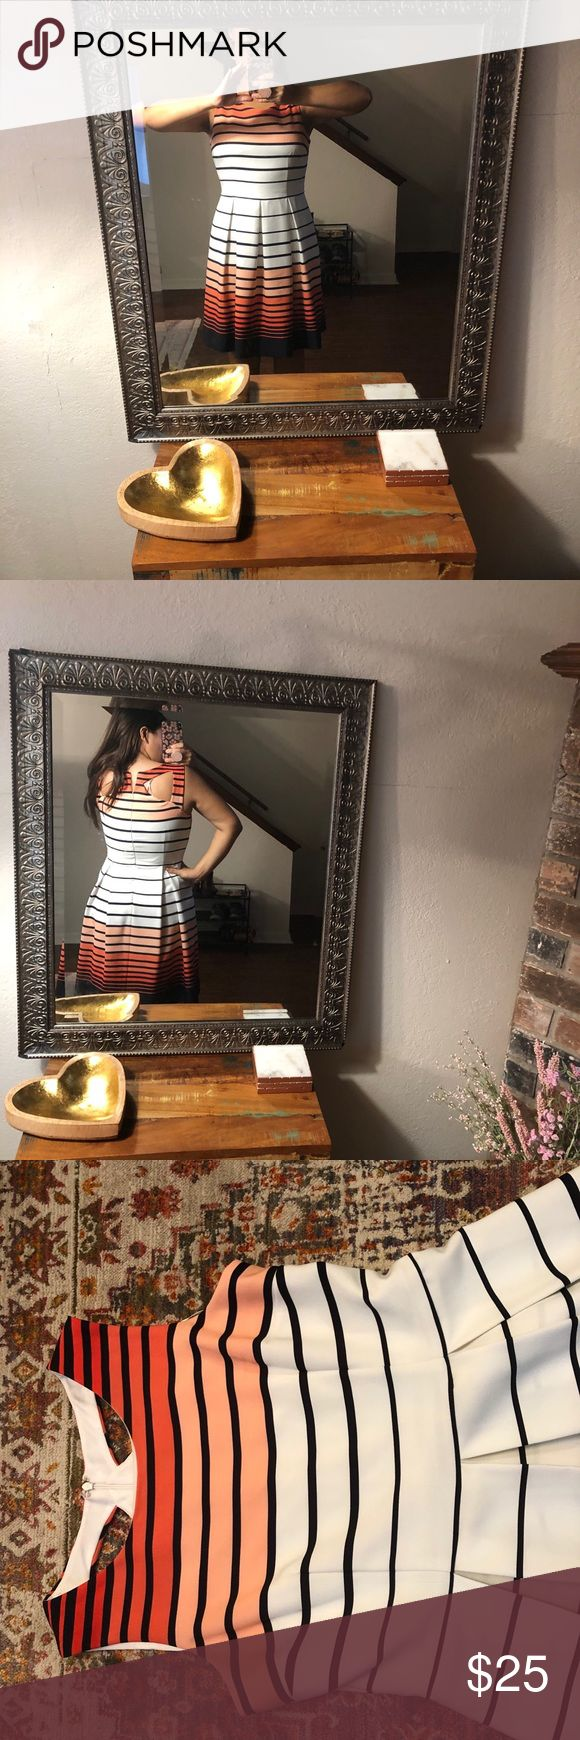 Studio one New York This is a white dress with navy blue stripes and peach and o…